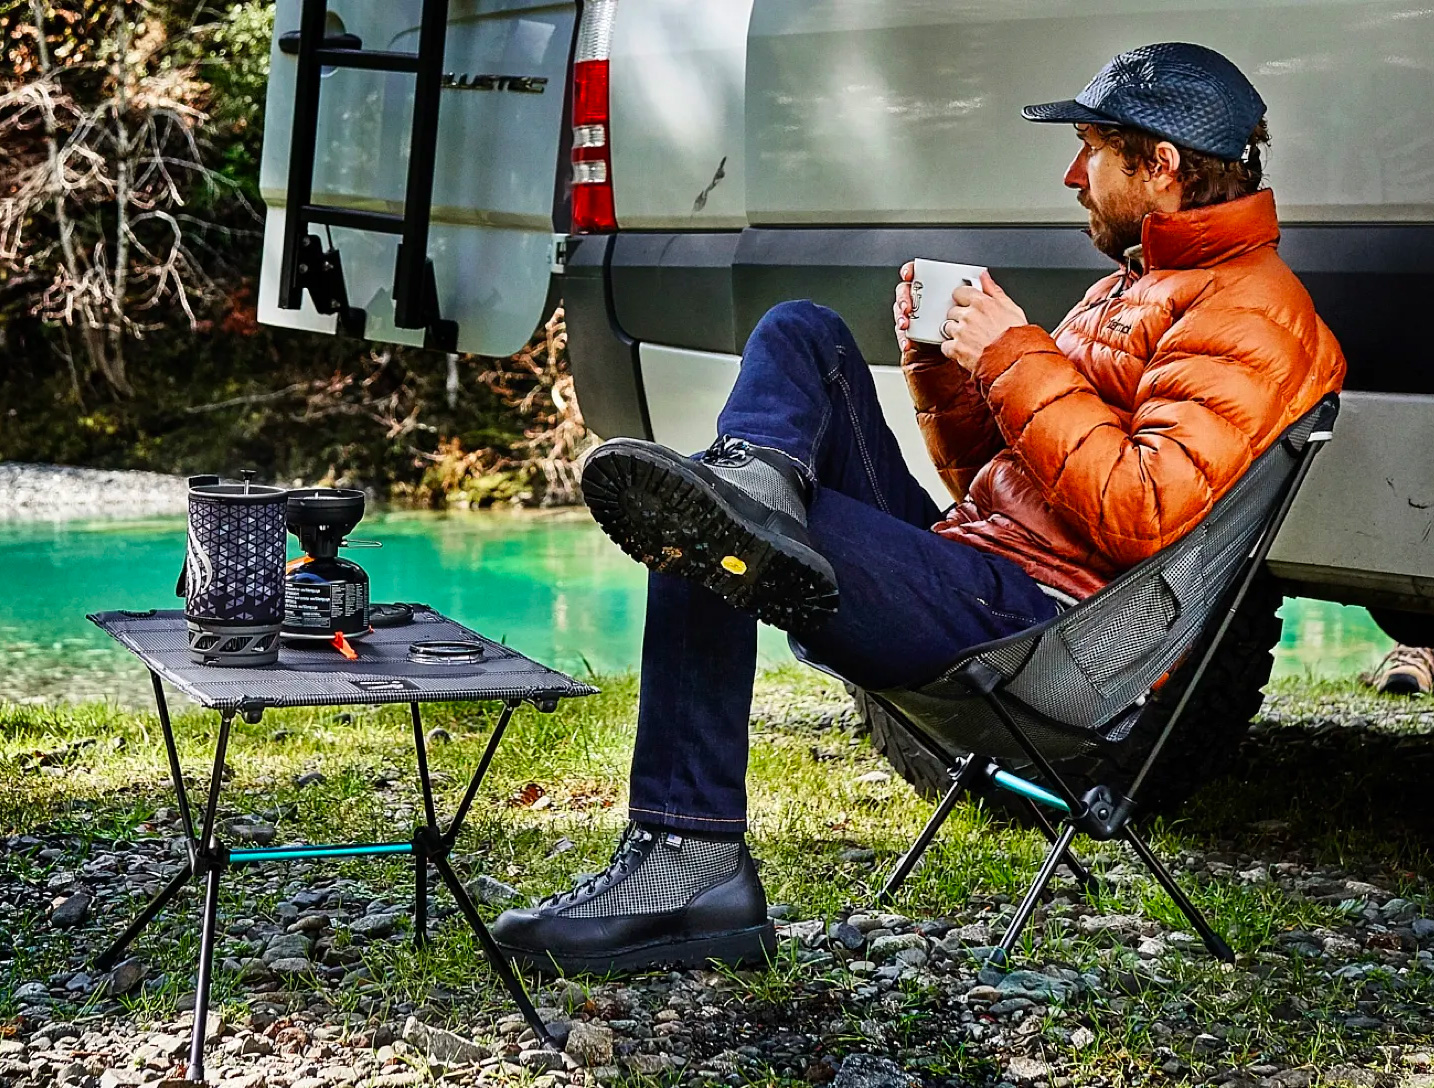 Danner & Helinox Team Up on a Light Hiker, Camp Chair & Table at werd.com